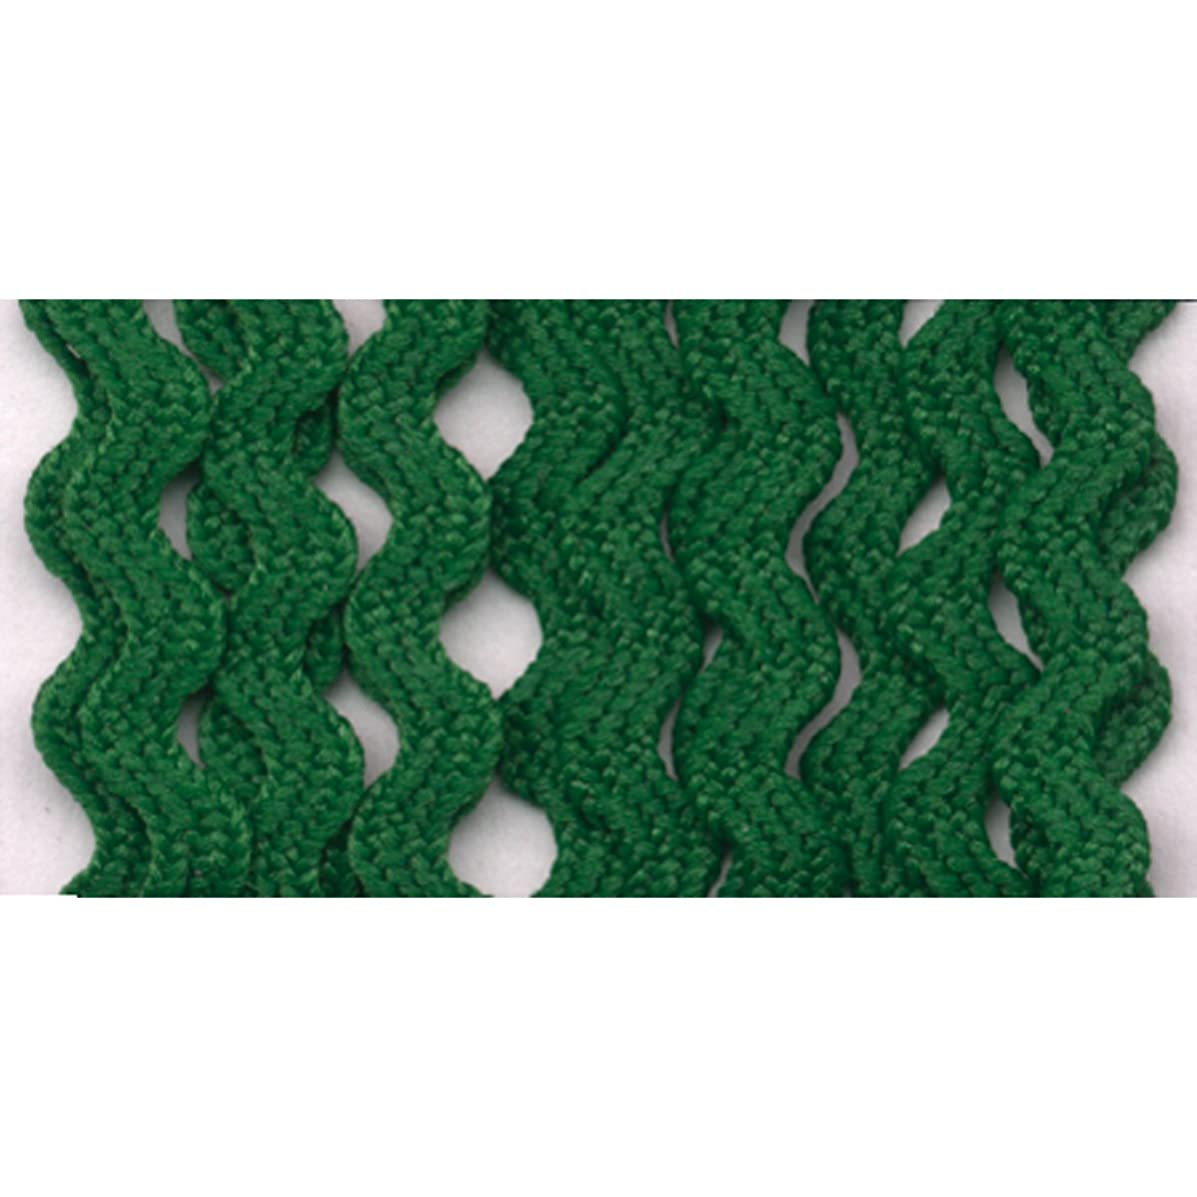 Wrights 117-400-044 Polyester Baby Rick Rack Utility Trim, Emerald, 4-Yard